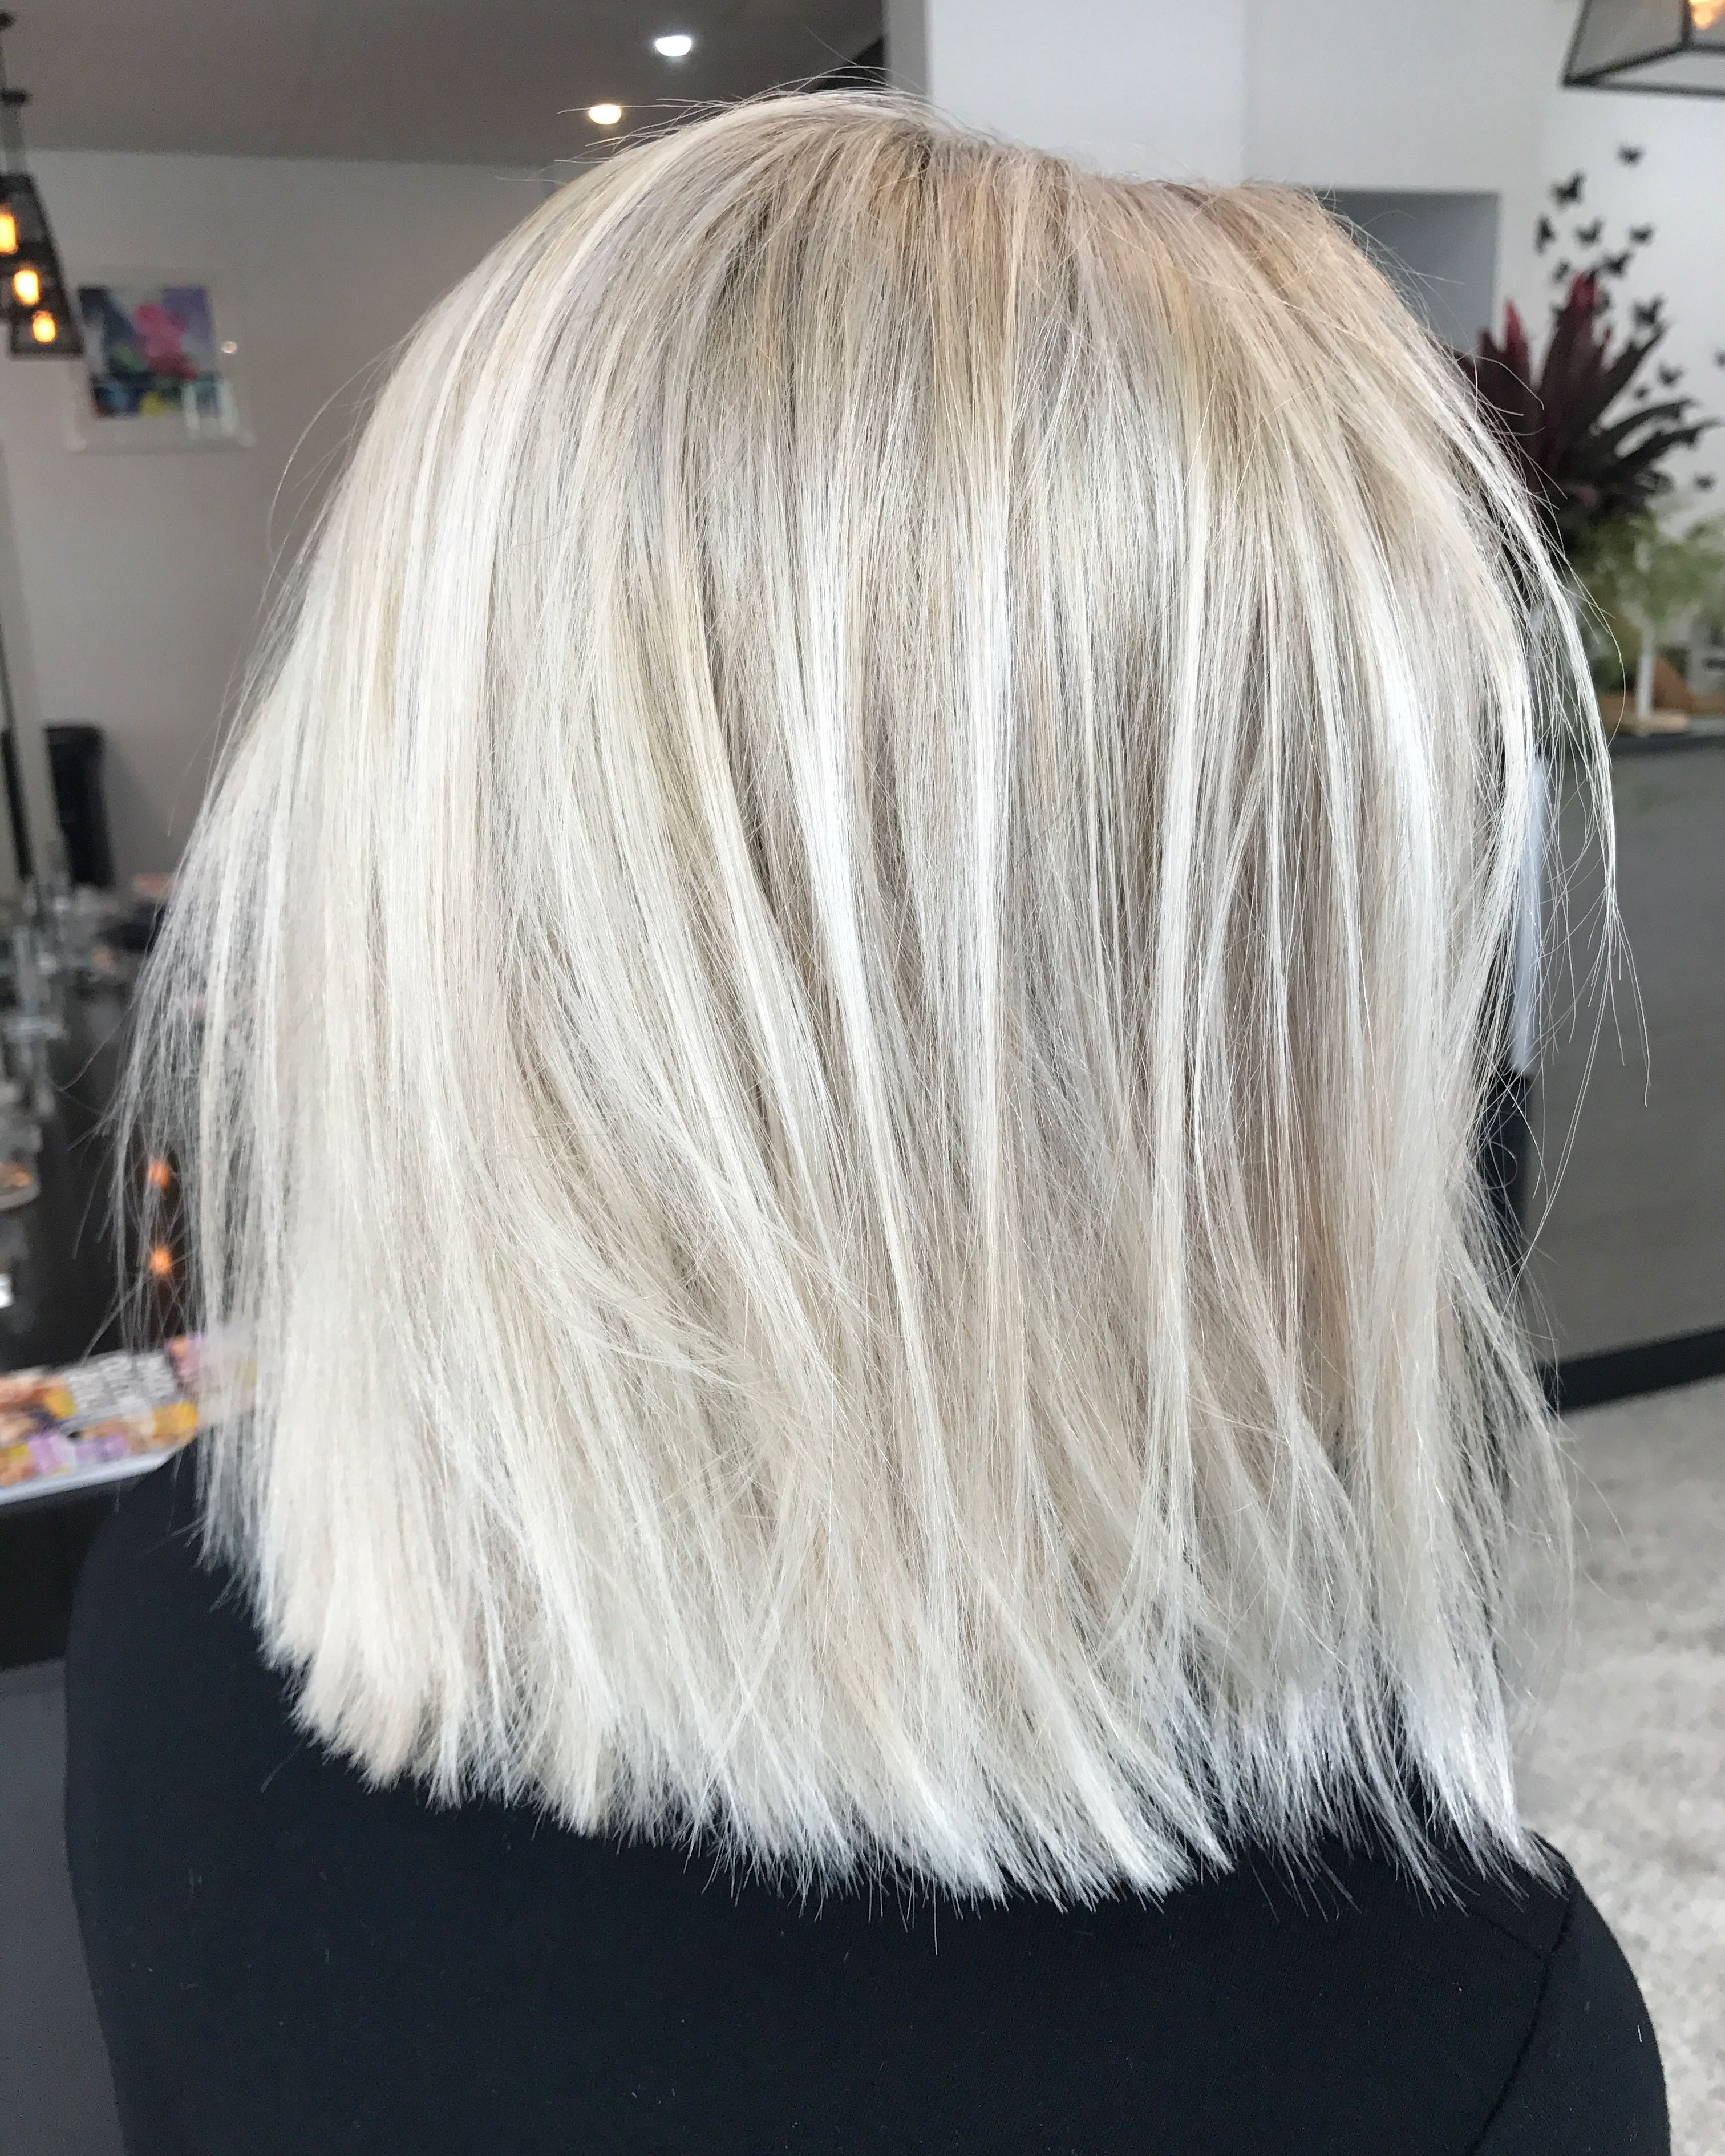 Blonde Lob Textured Short Hair Colour Lived In Hair Colour Cool Ash Inside Best And Newest Striking Angled Platinum Lob Blonde Hairstyles (View 7 of 20)